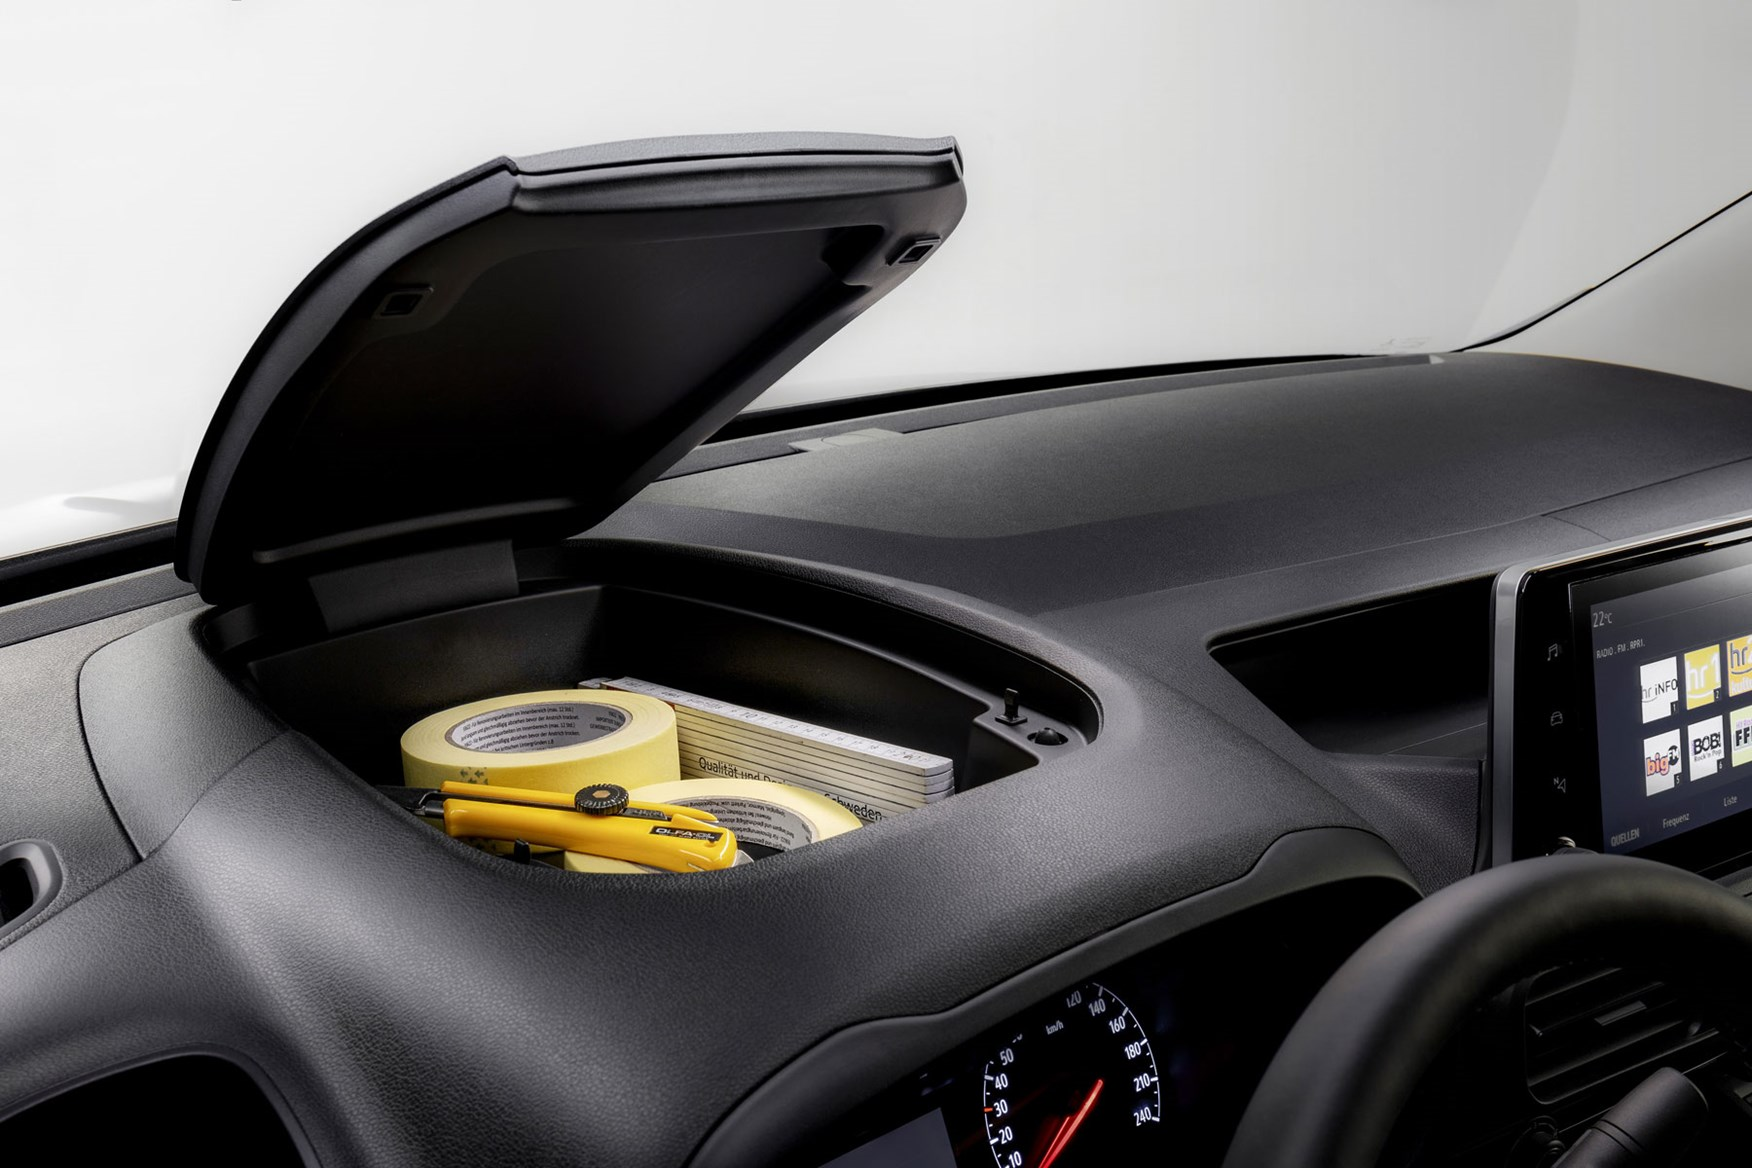 Vauxhall Combo 2019 review - dashtop storage bin with lid